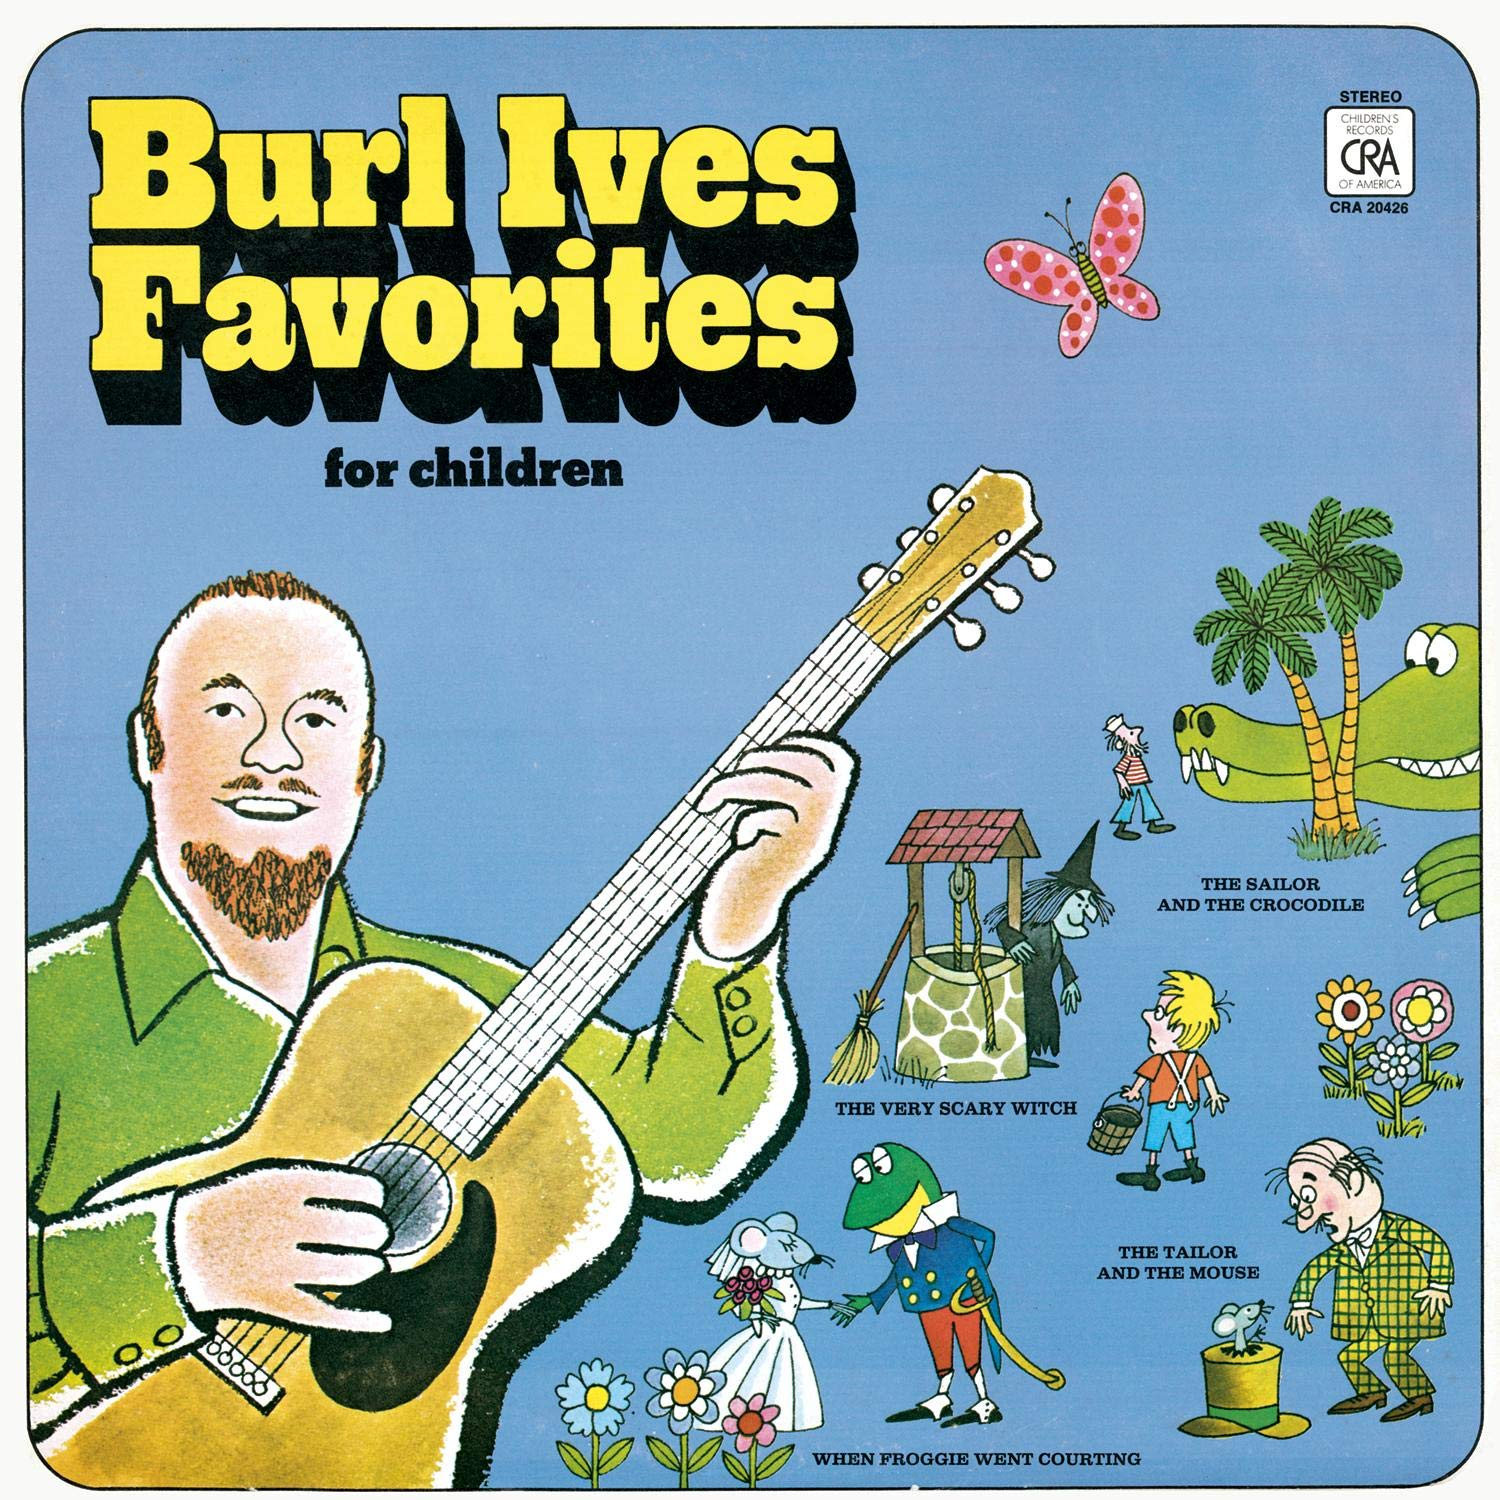 Burl Ives: Favorites for Children by SHOUT! FACTORY